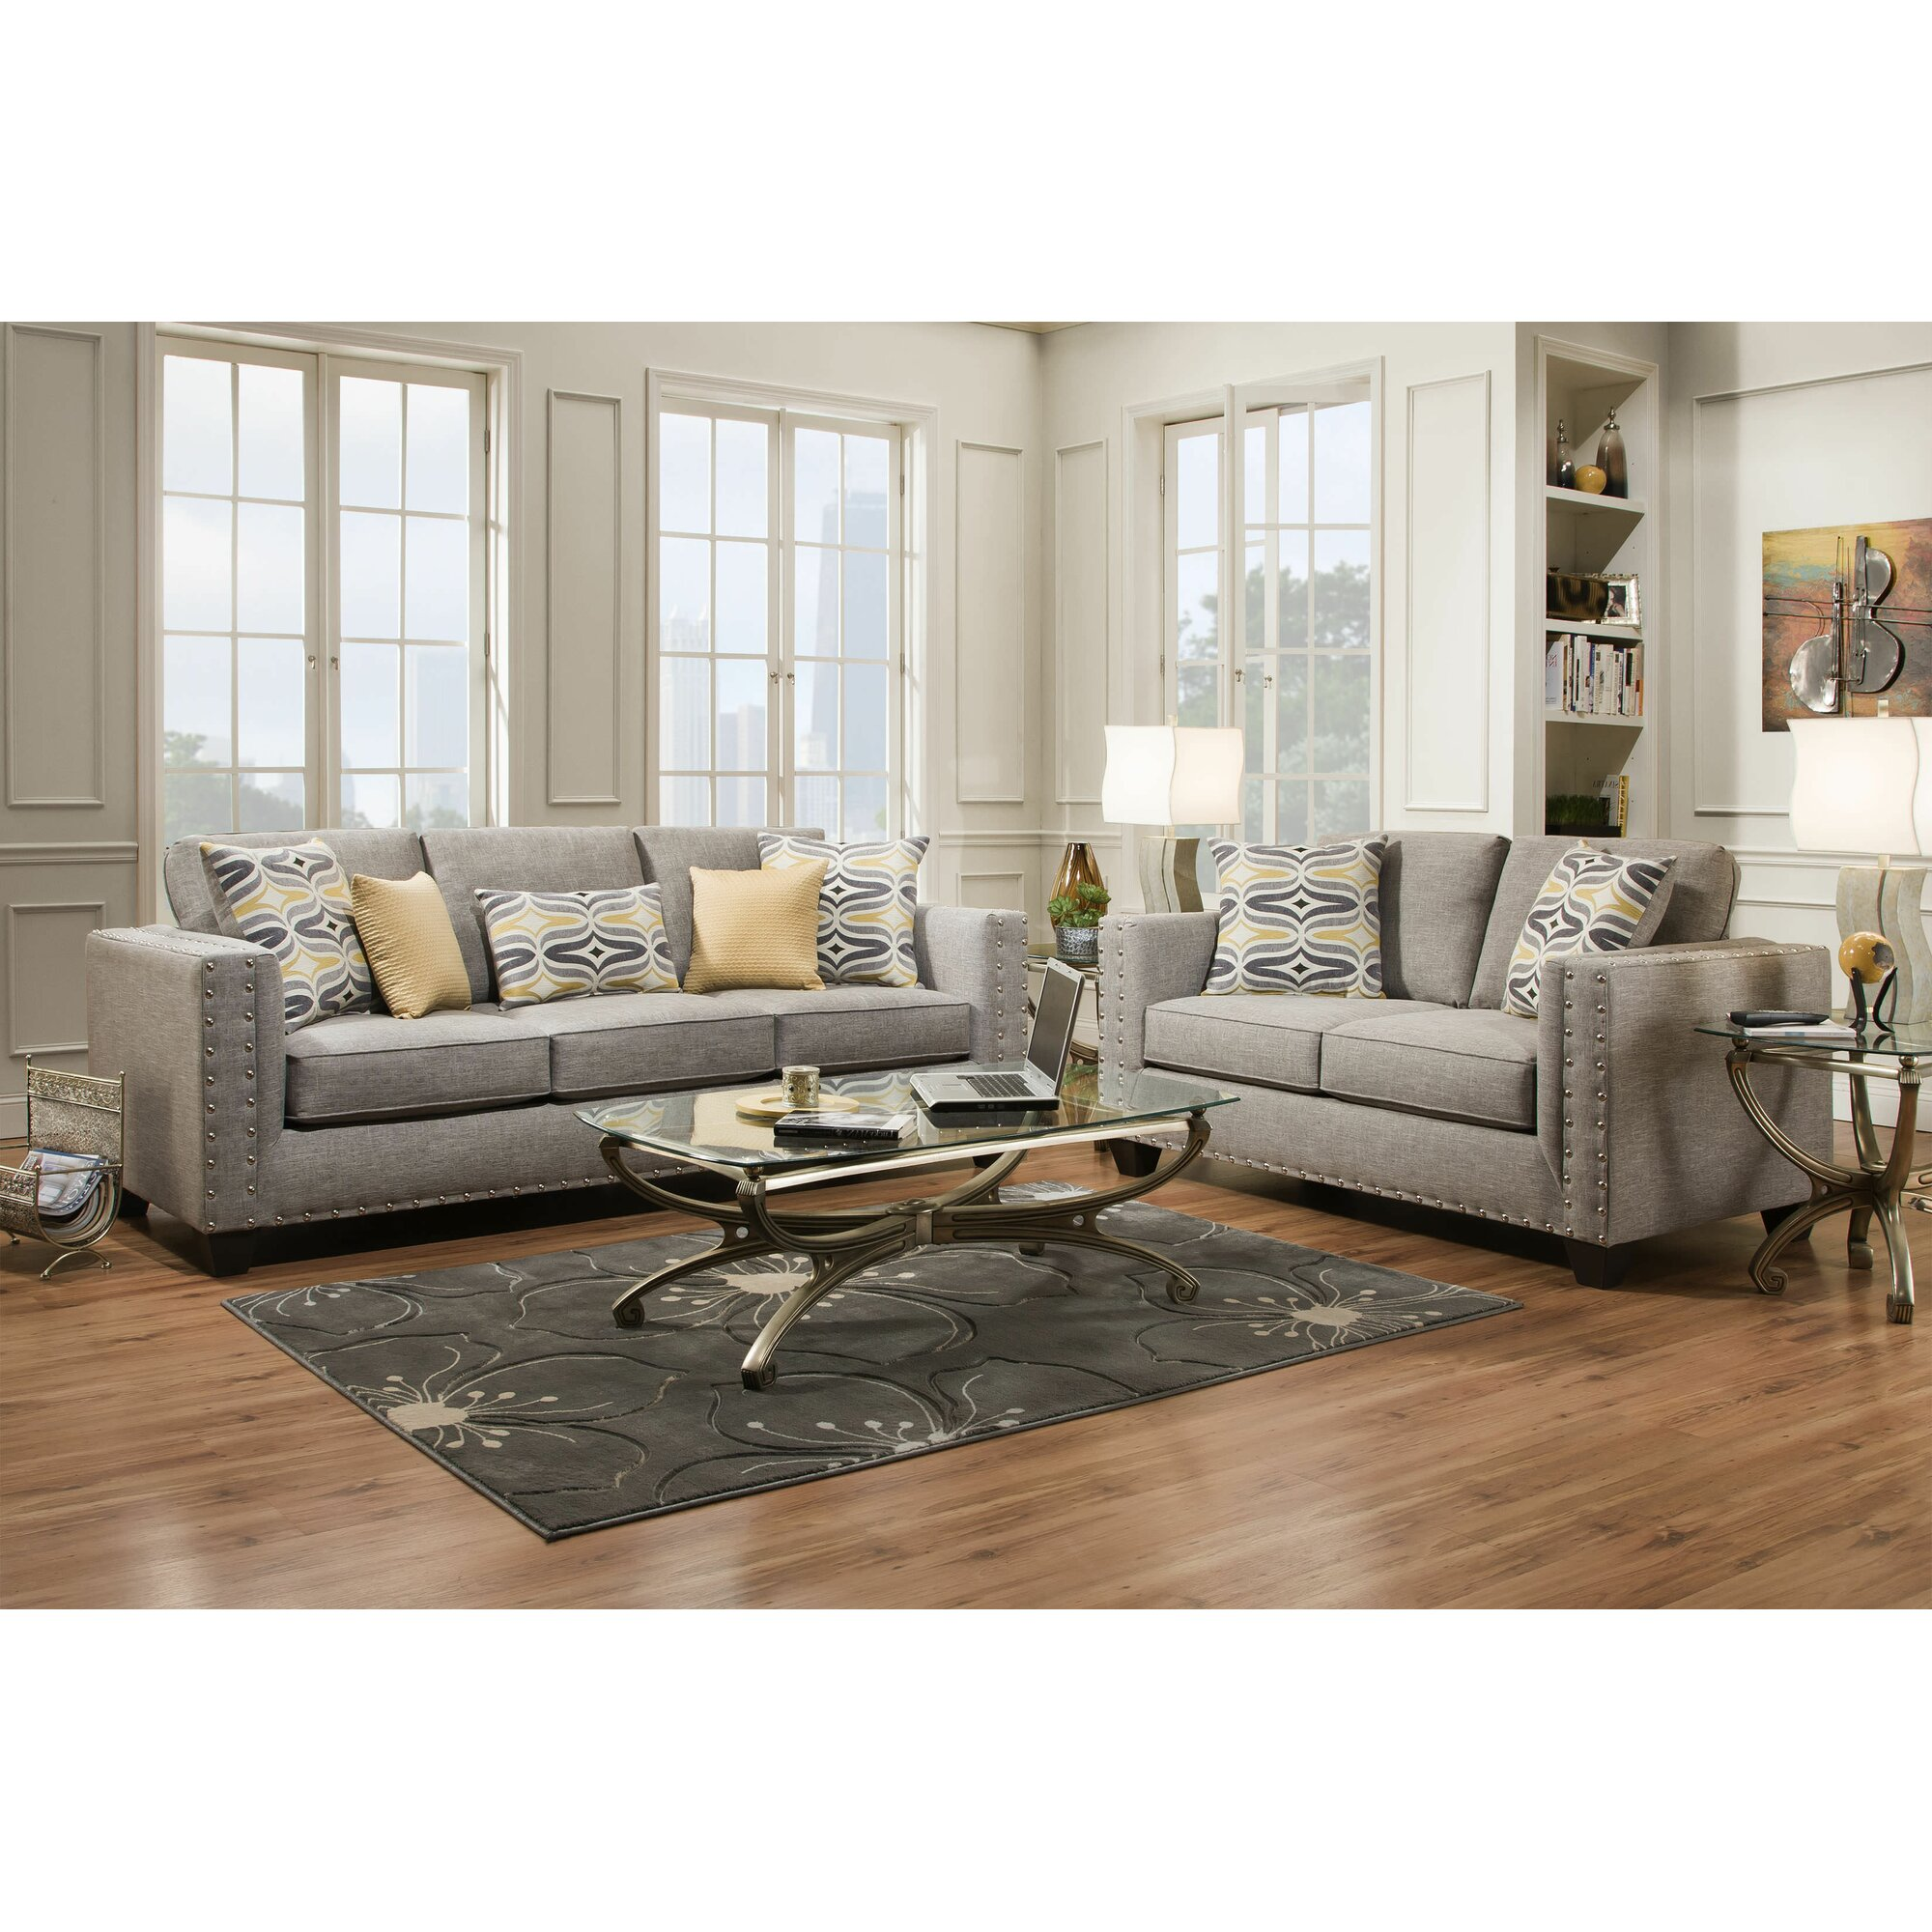 Room And Board Chelsea Sofa Home Design Ideas And Pictures ~ Room And Board Sofa Reviews